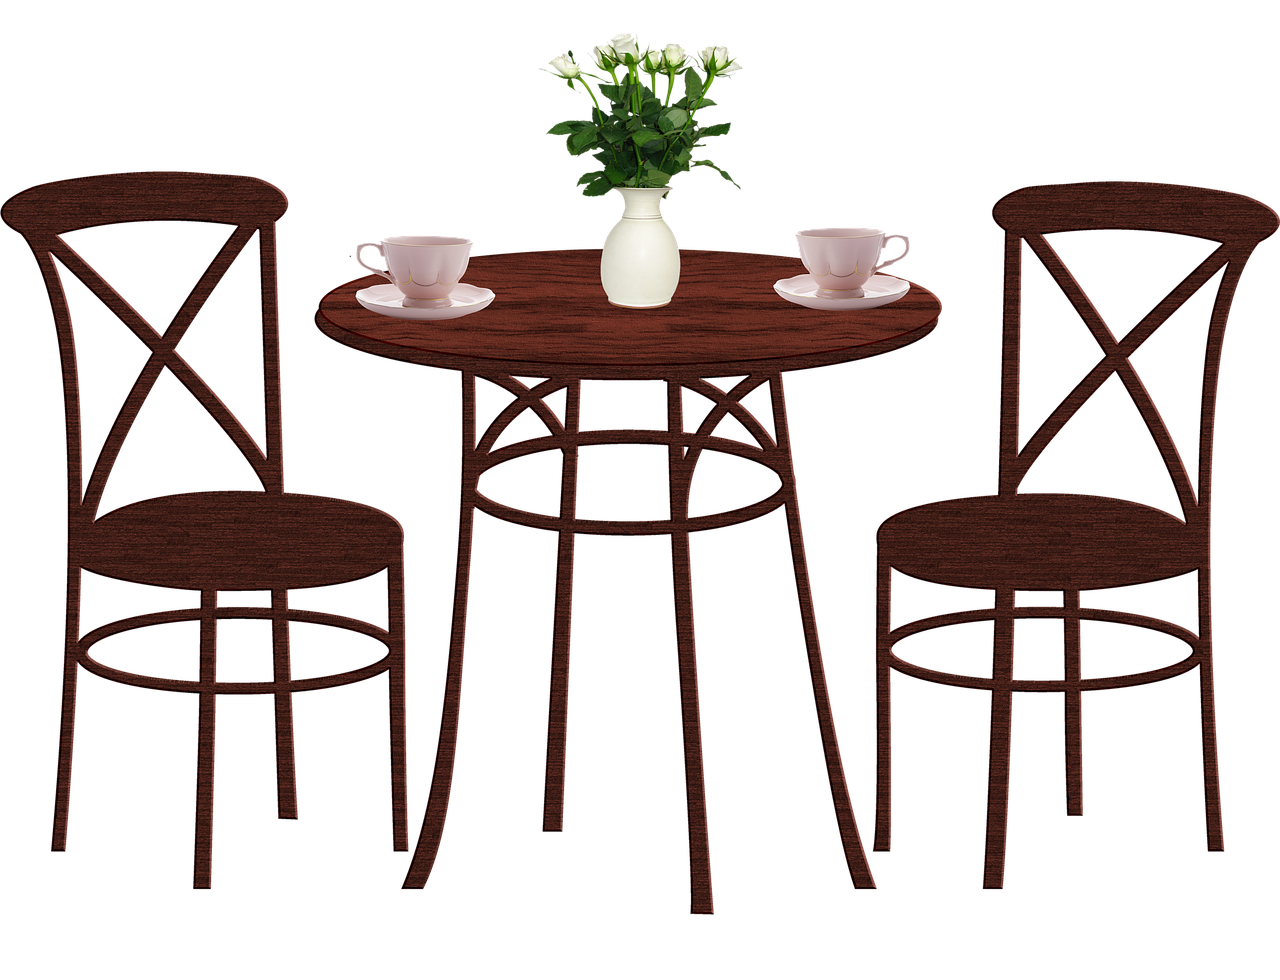 dining table, chairs, coffee